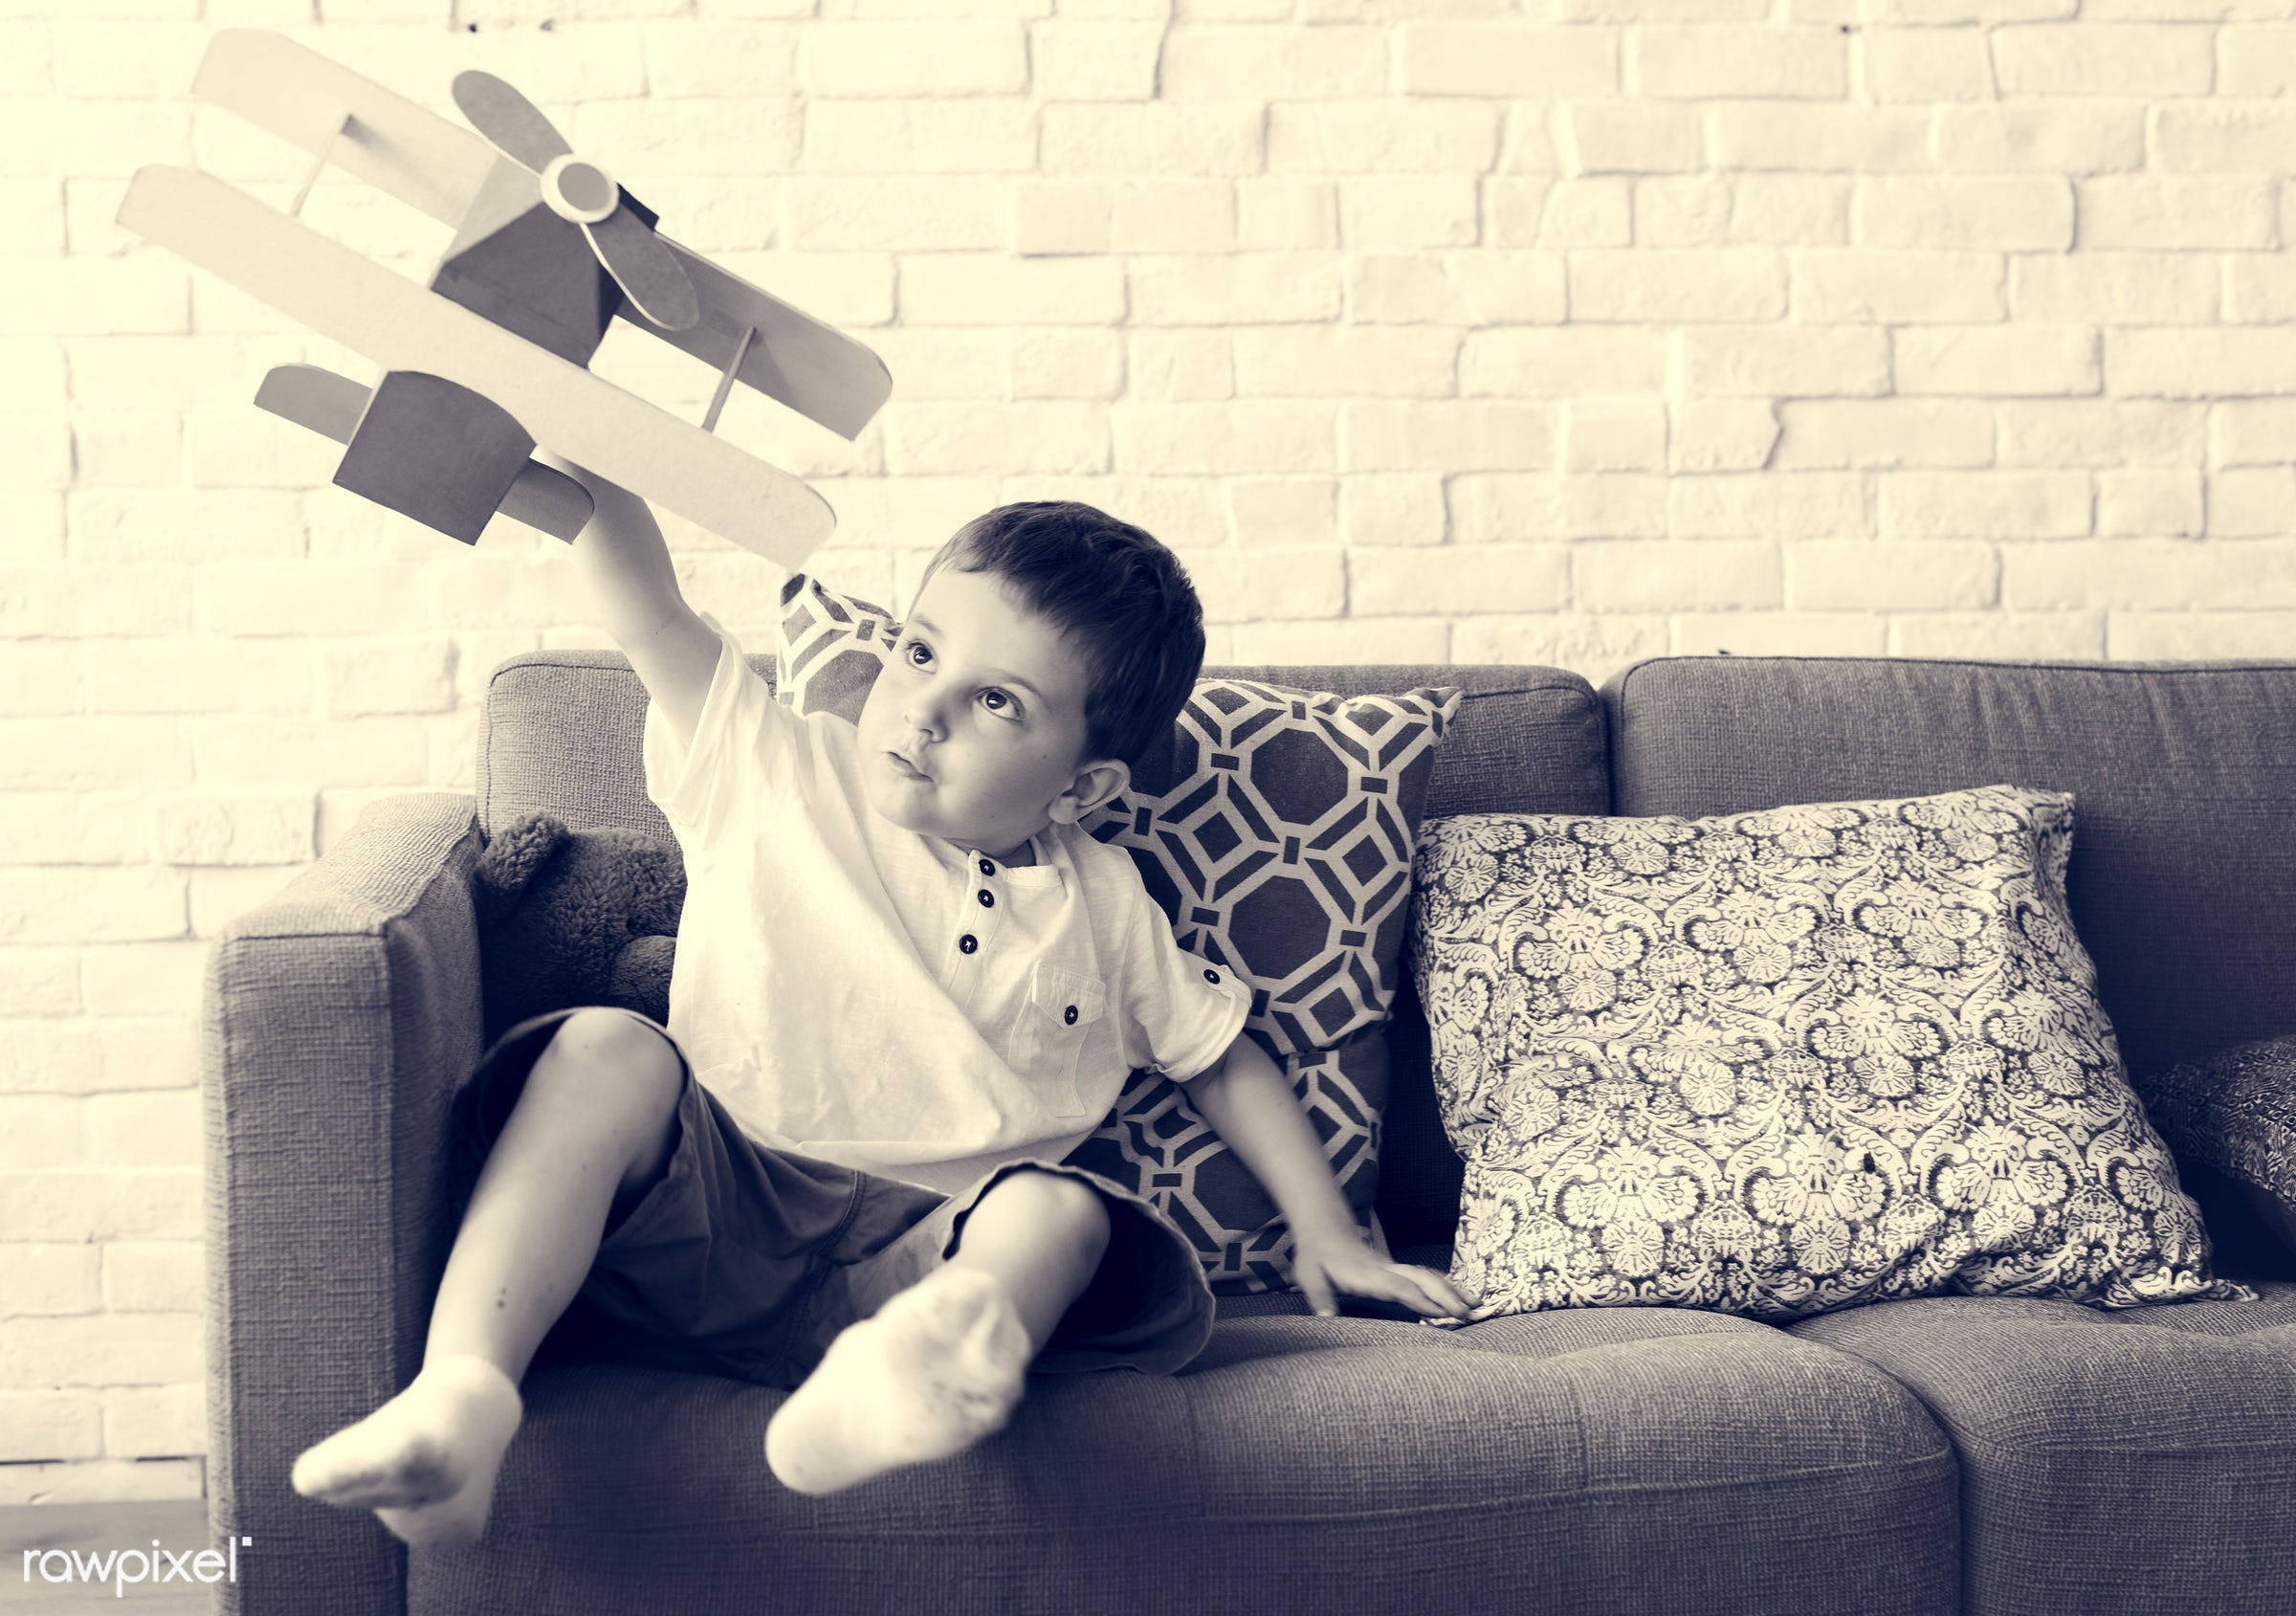 home, person, holding, indoors, house, object, travel, recreation, kid, caucasian, playing, child, aviation, flying, toy,...